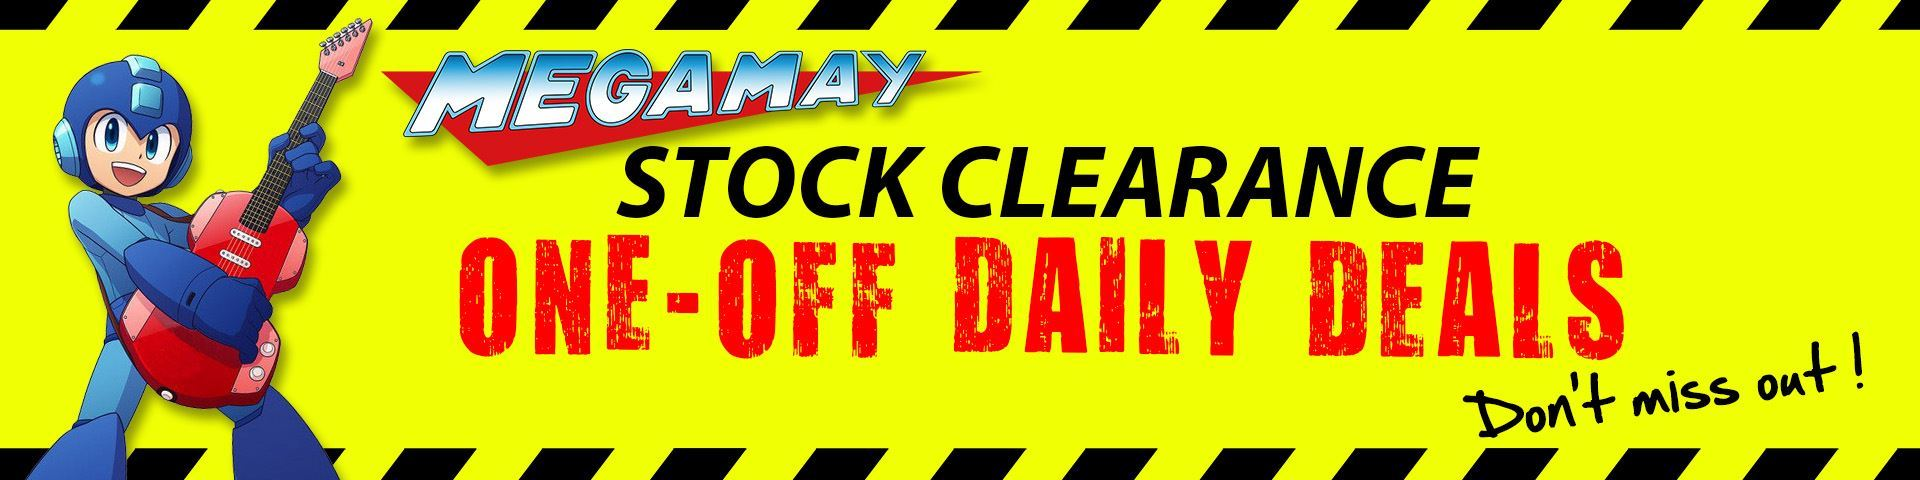 Mega May Stock Clearance - Deal of the Day